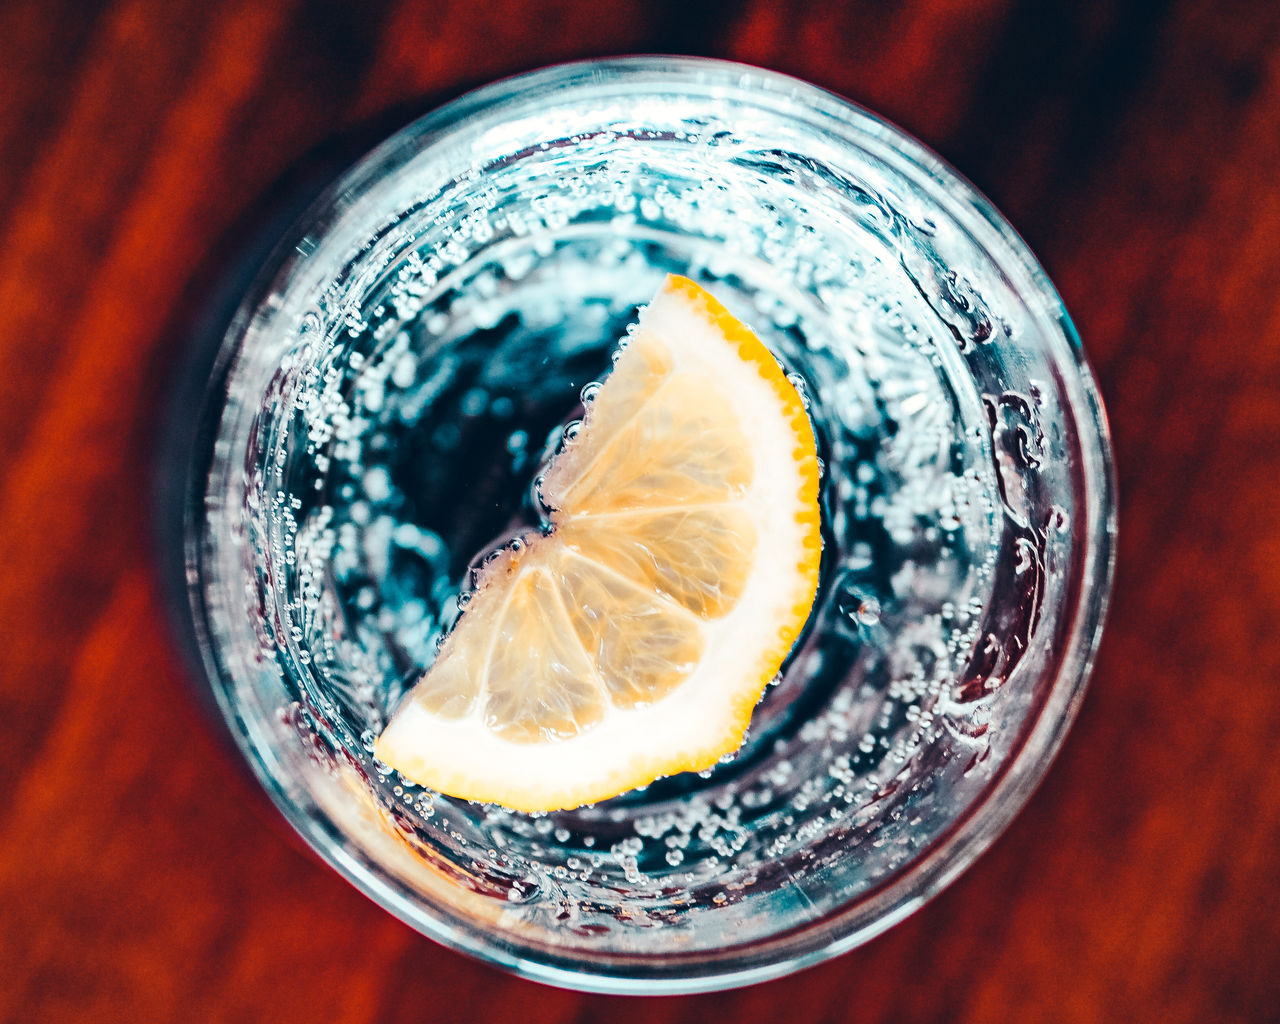 Directly above shot of lemon in glass of water